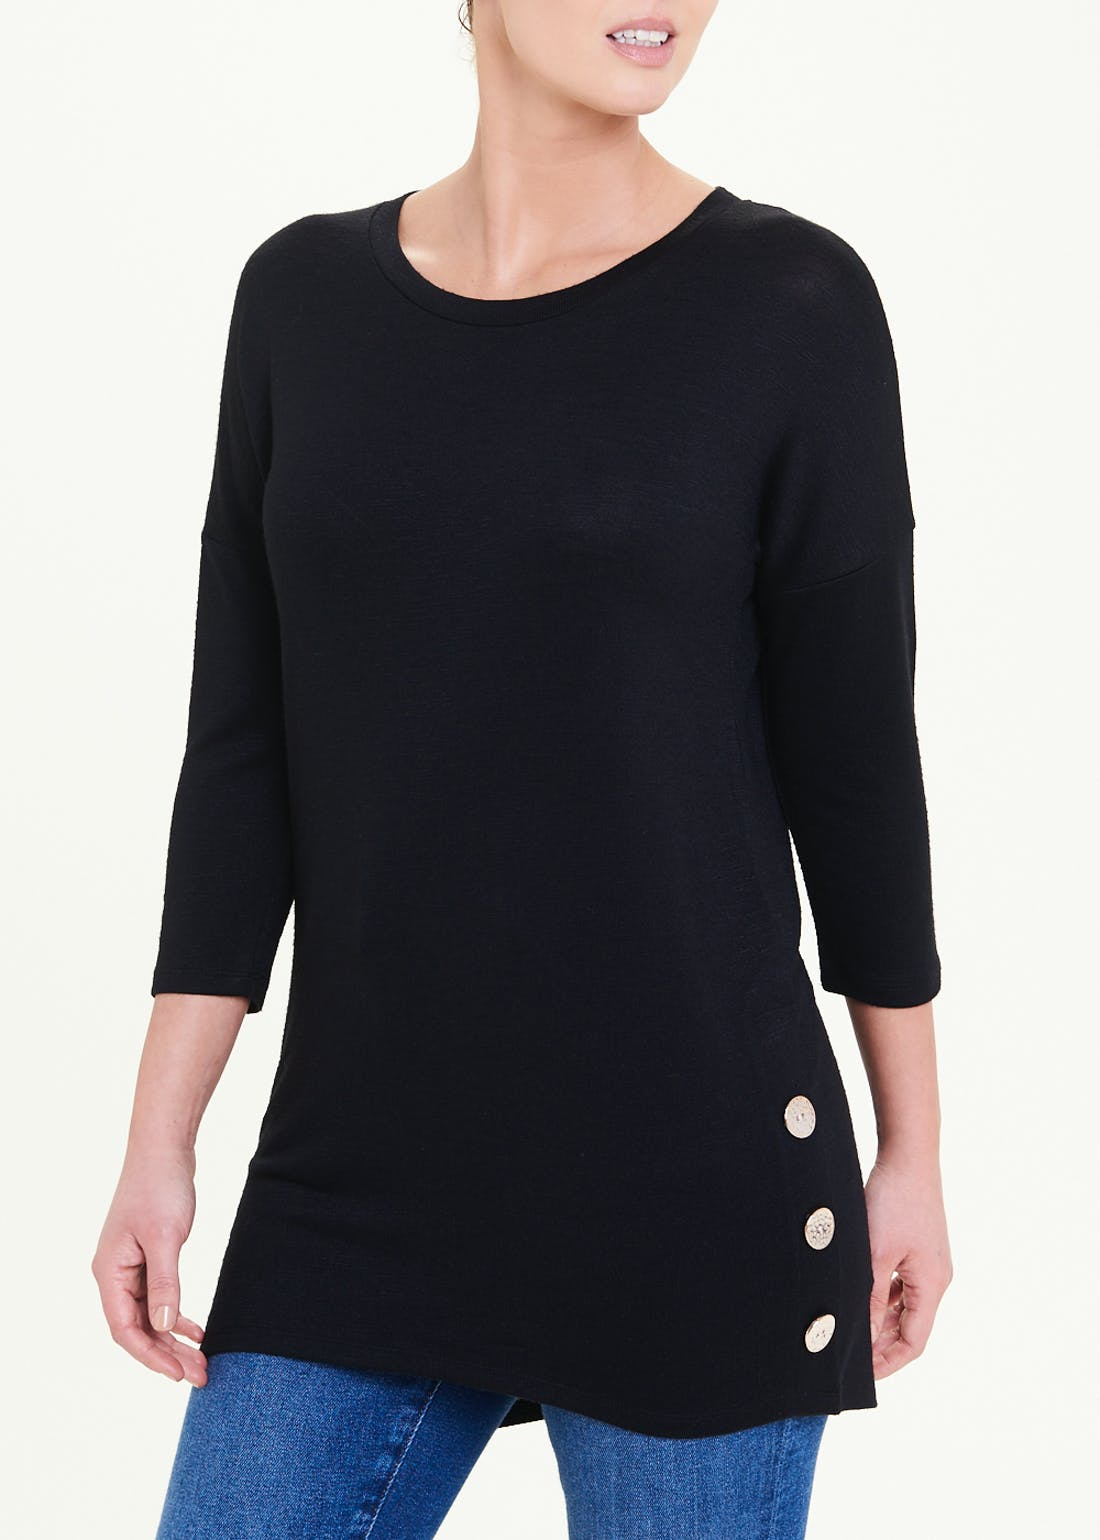 Oversized Side Button Top